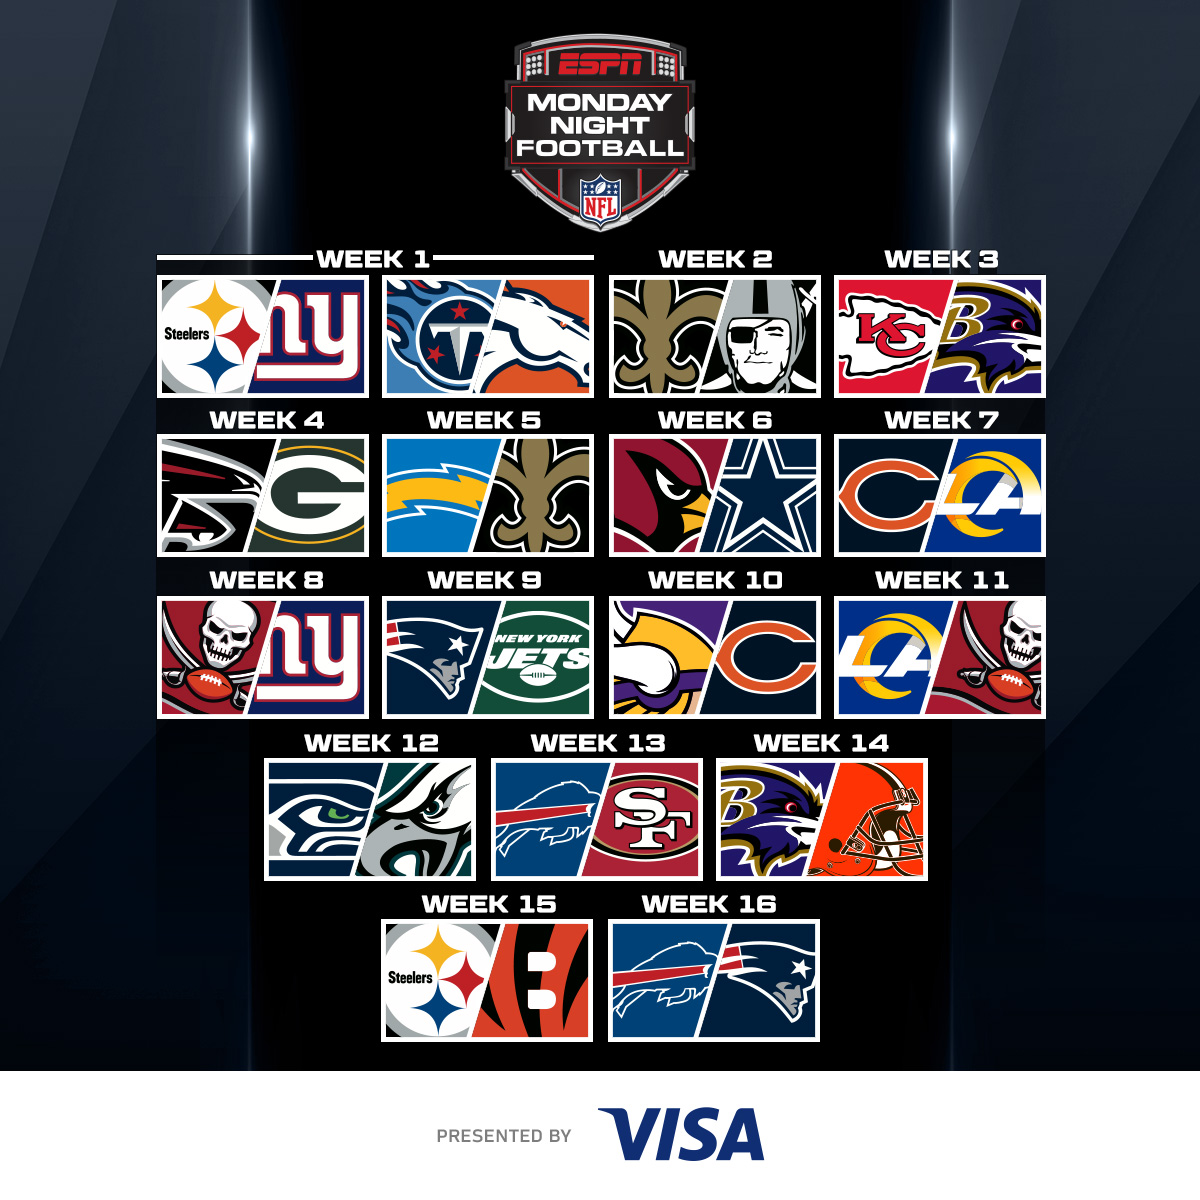 Nfl On Twitter The 2020 Monday Night Football Schedule By Visa 2020 Nfl Schedule Release Live Now On Nflnetwork